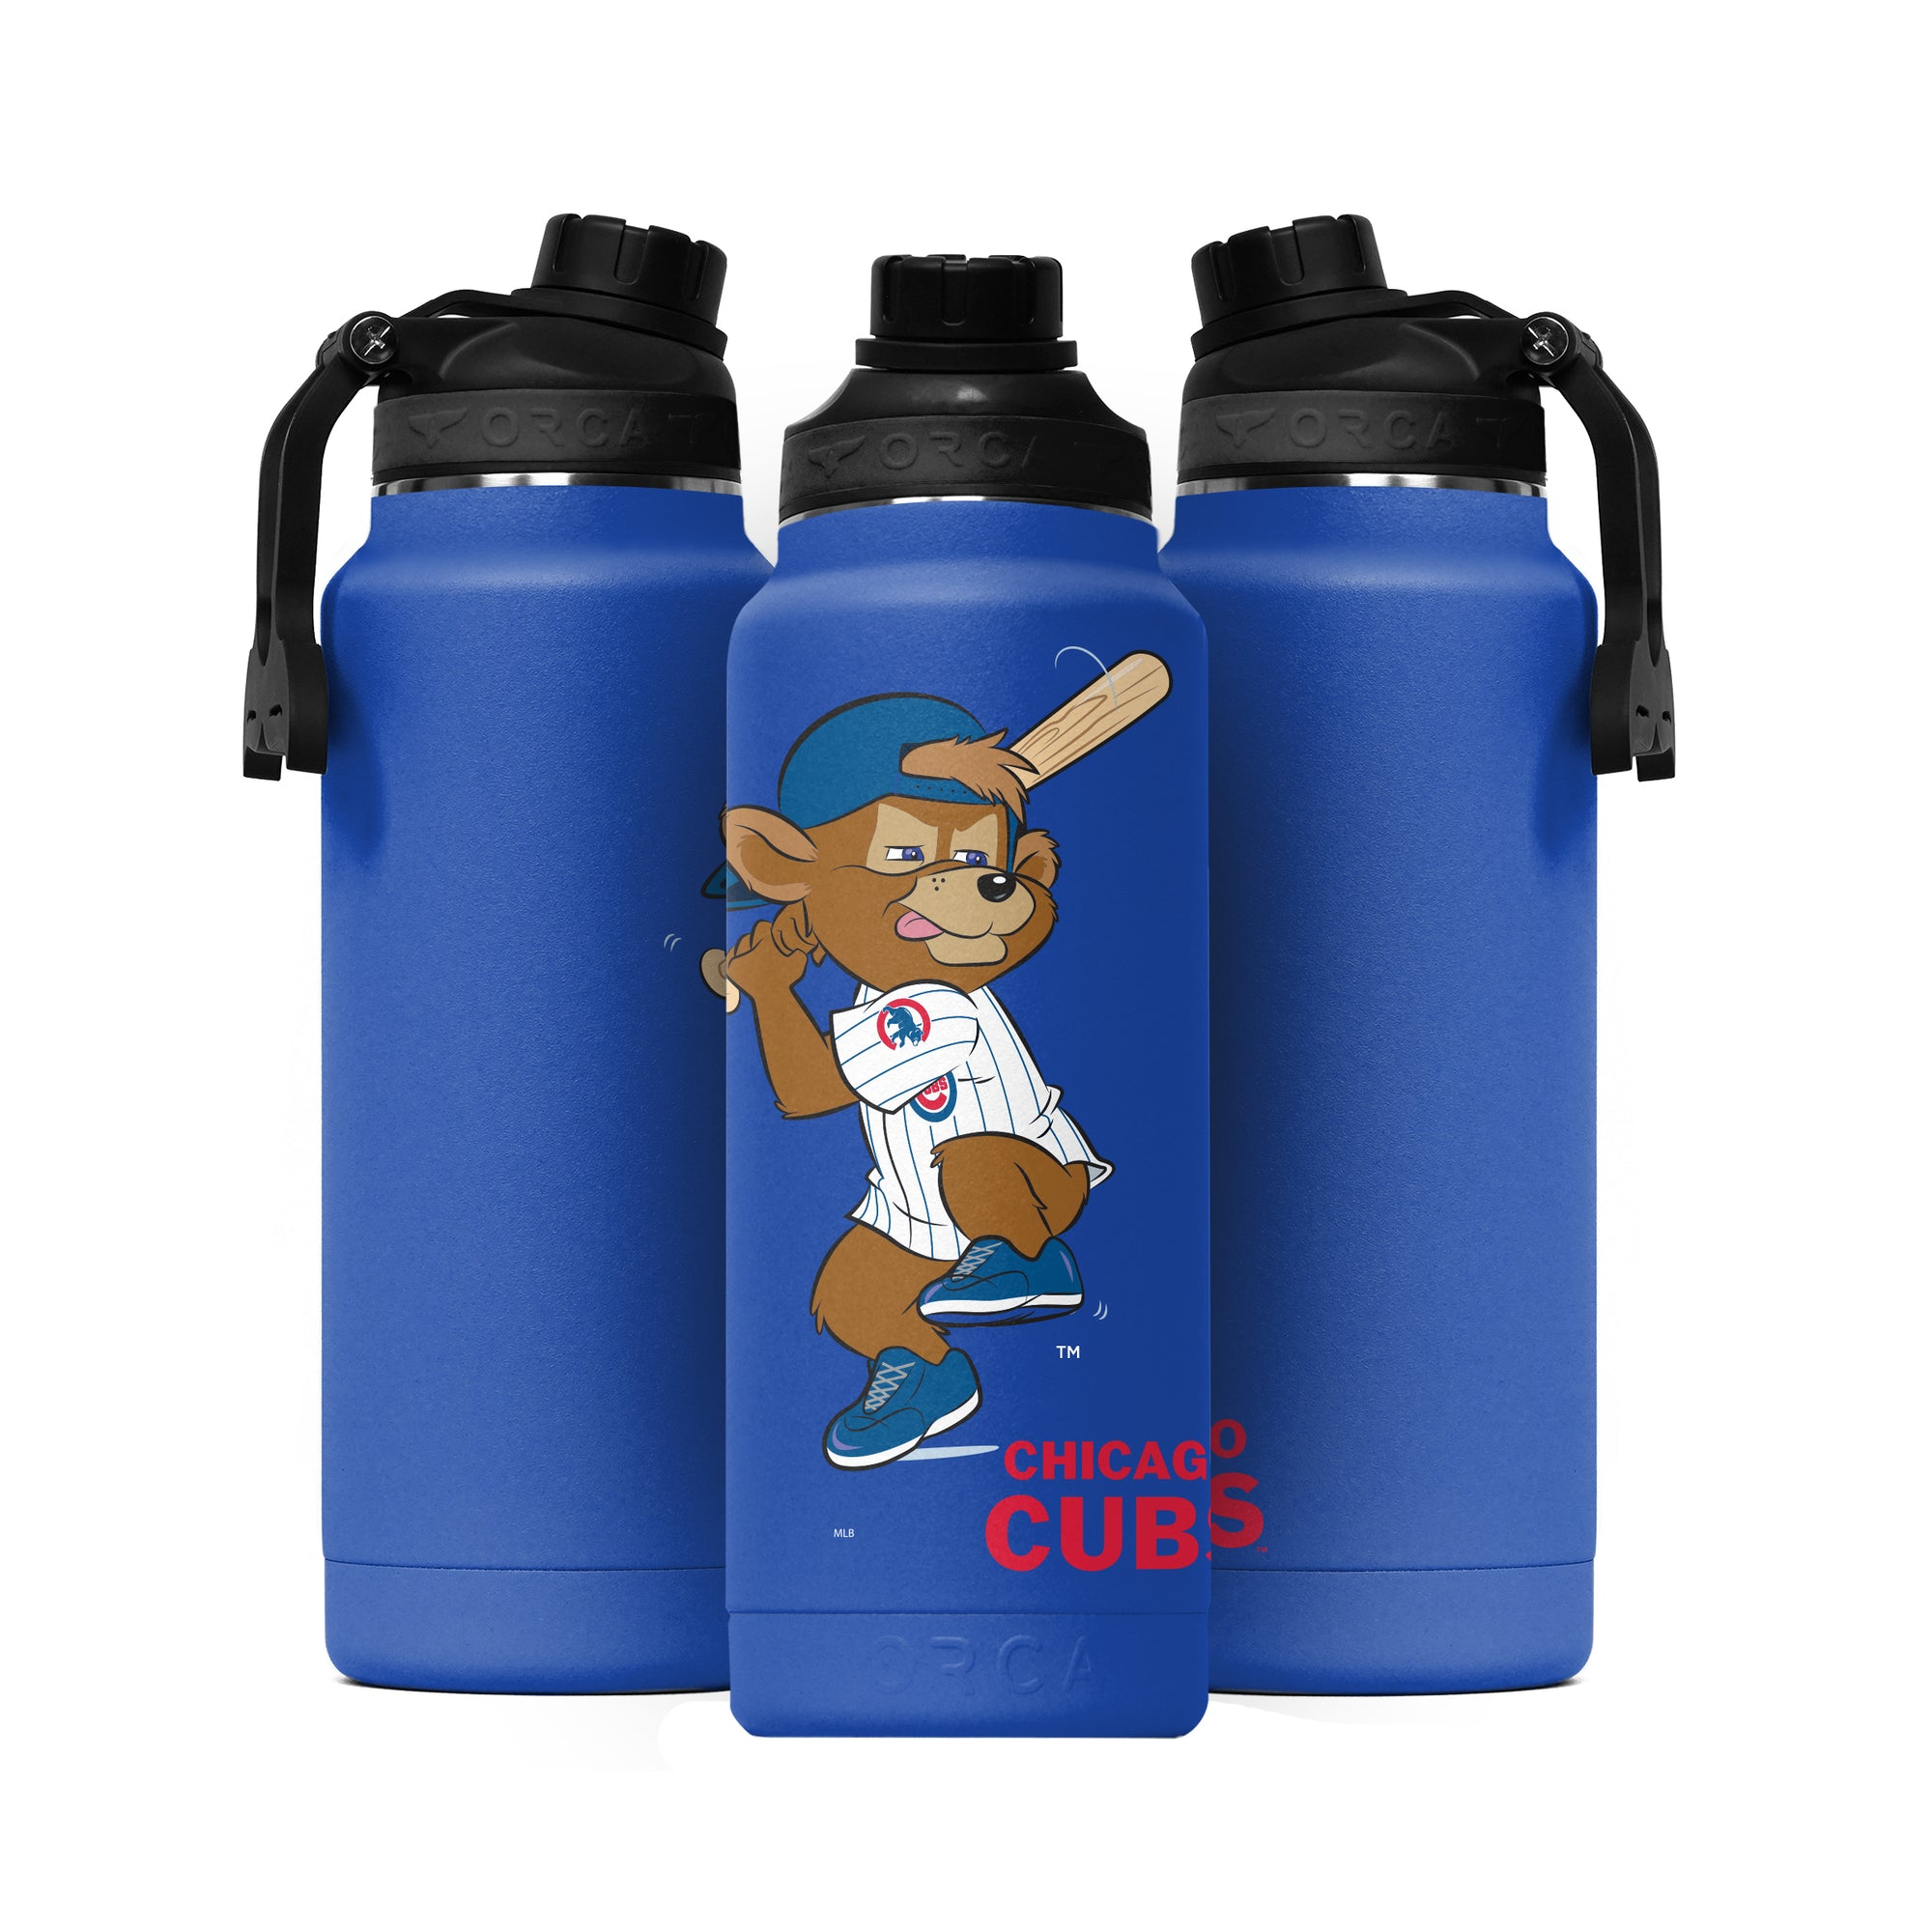 Chicago Cubs Mascot Action Hydra 34oz - ORCA